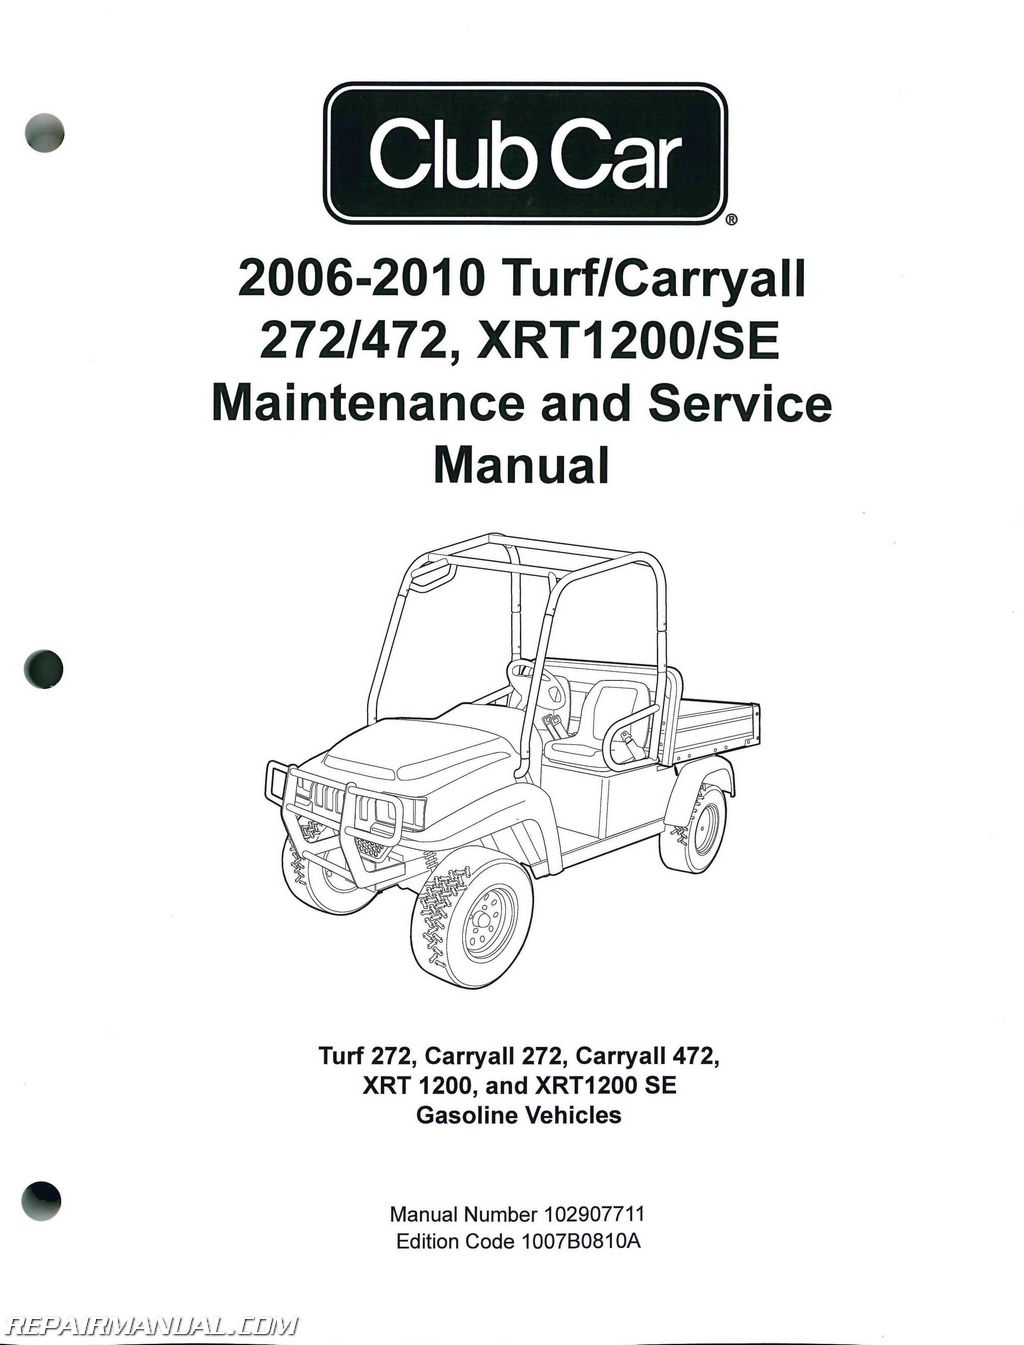 2006 2010 Club Car Turf Carryall 272 472 XRT1200 SE Turf 272 Carryall 272 Carryall 472 XRT 1200 and XRT1200 SE Gas Service Manual1?resize\\\=665%2C873 club car model 26580 charger wiring diagram wiring diagrams Schumacher Battery Charger Wiring Diagram at gsmx.co